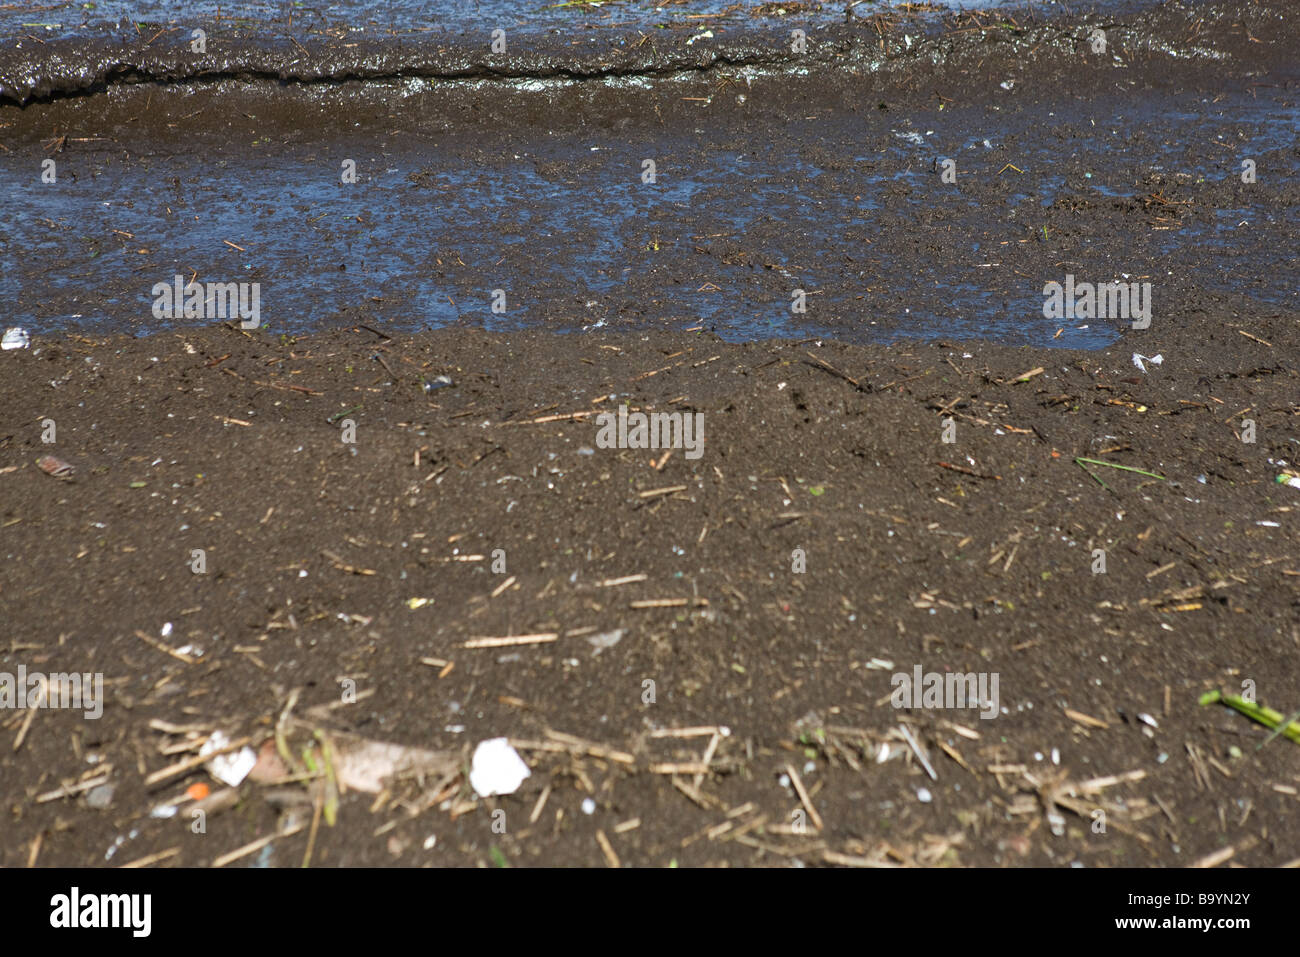 Muddy, polluted shore, close-up - Stock Image